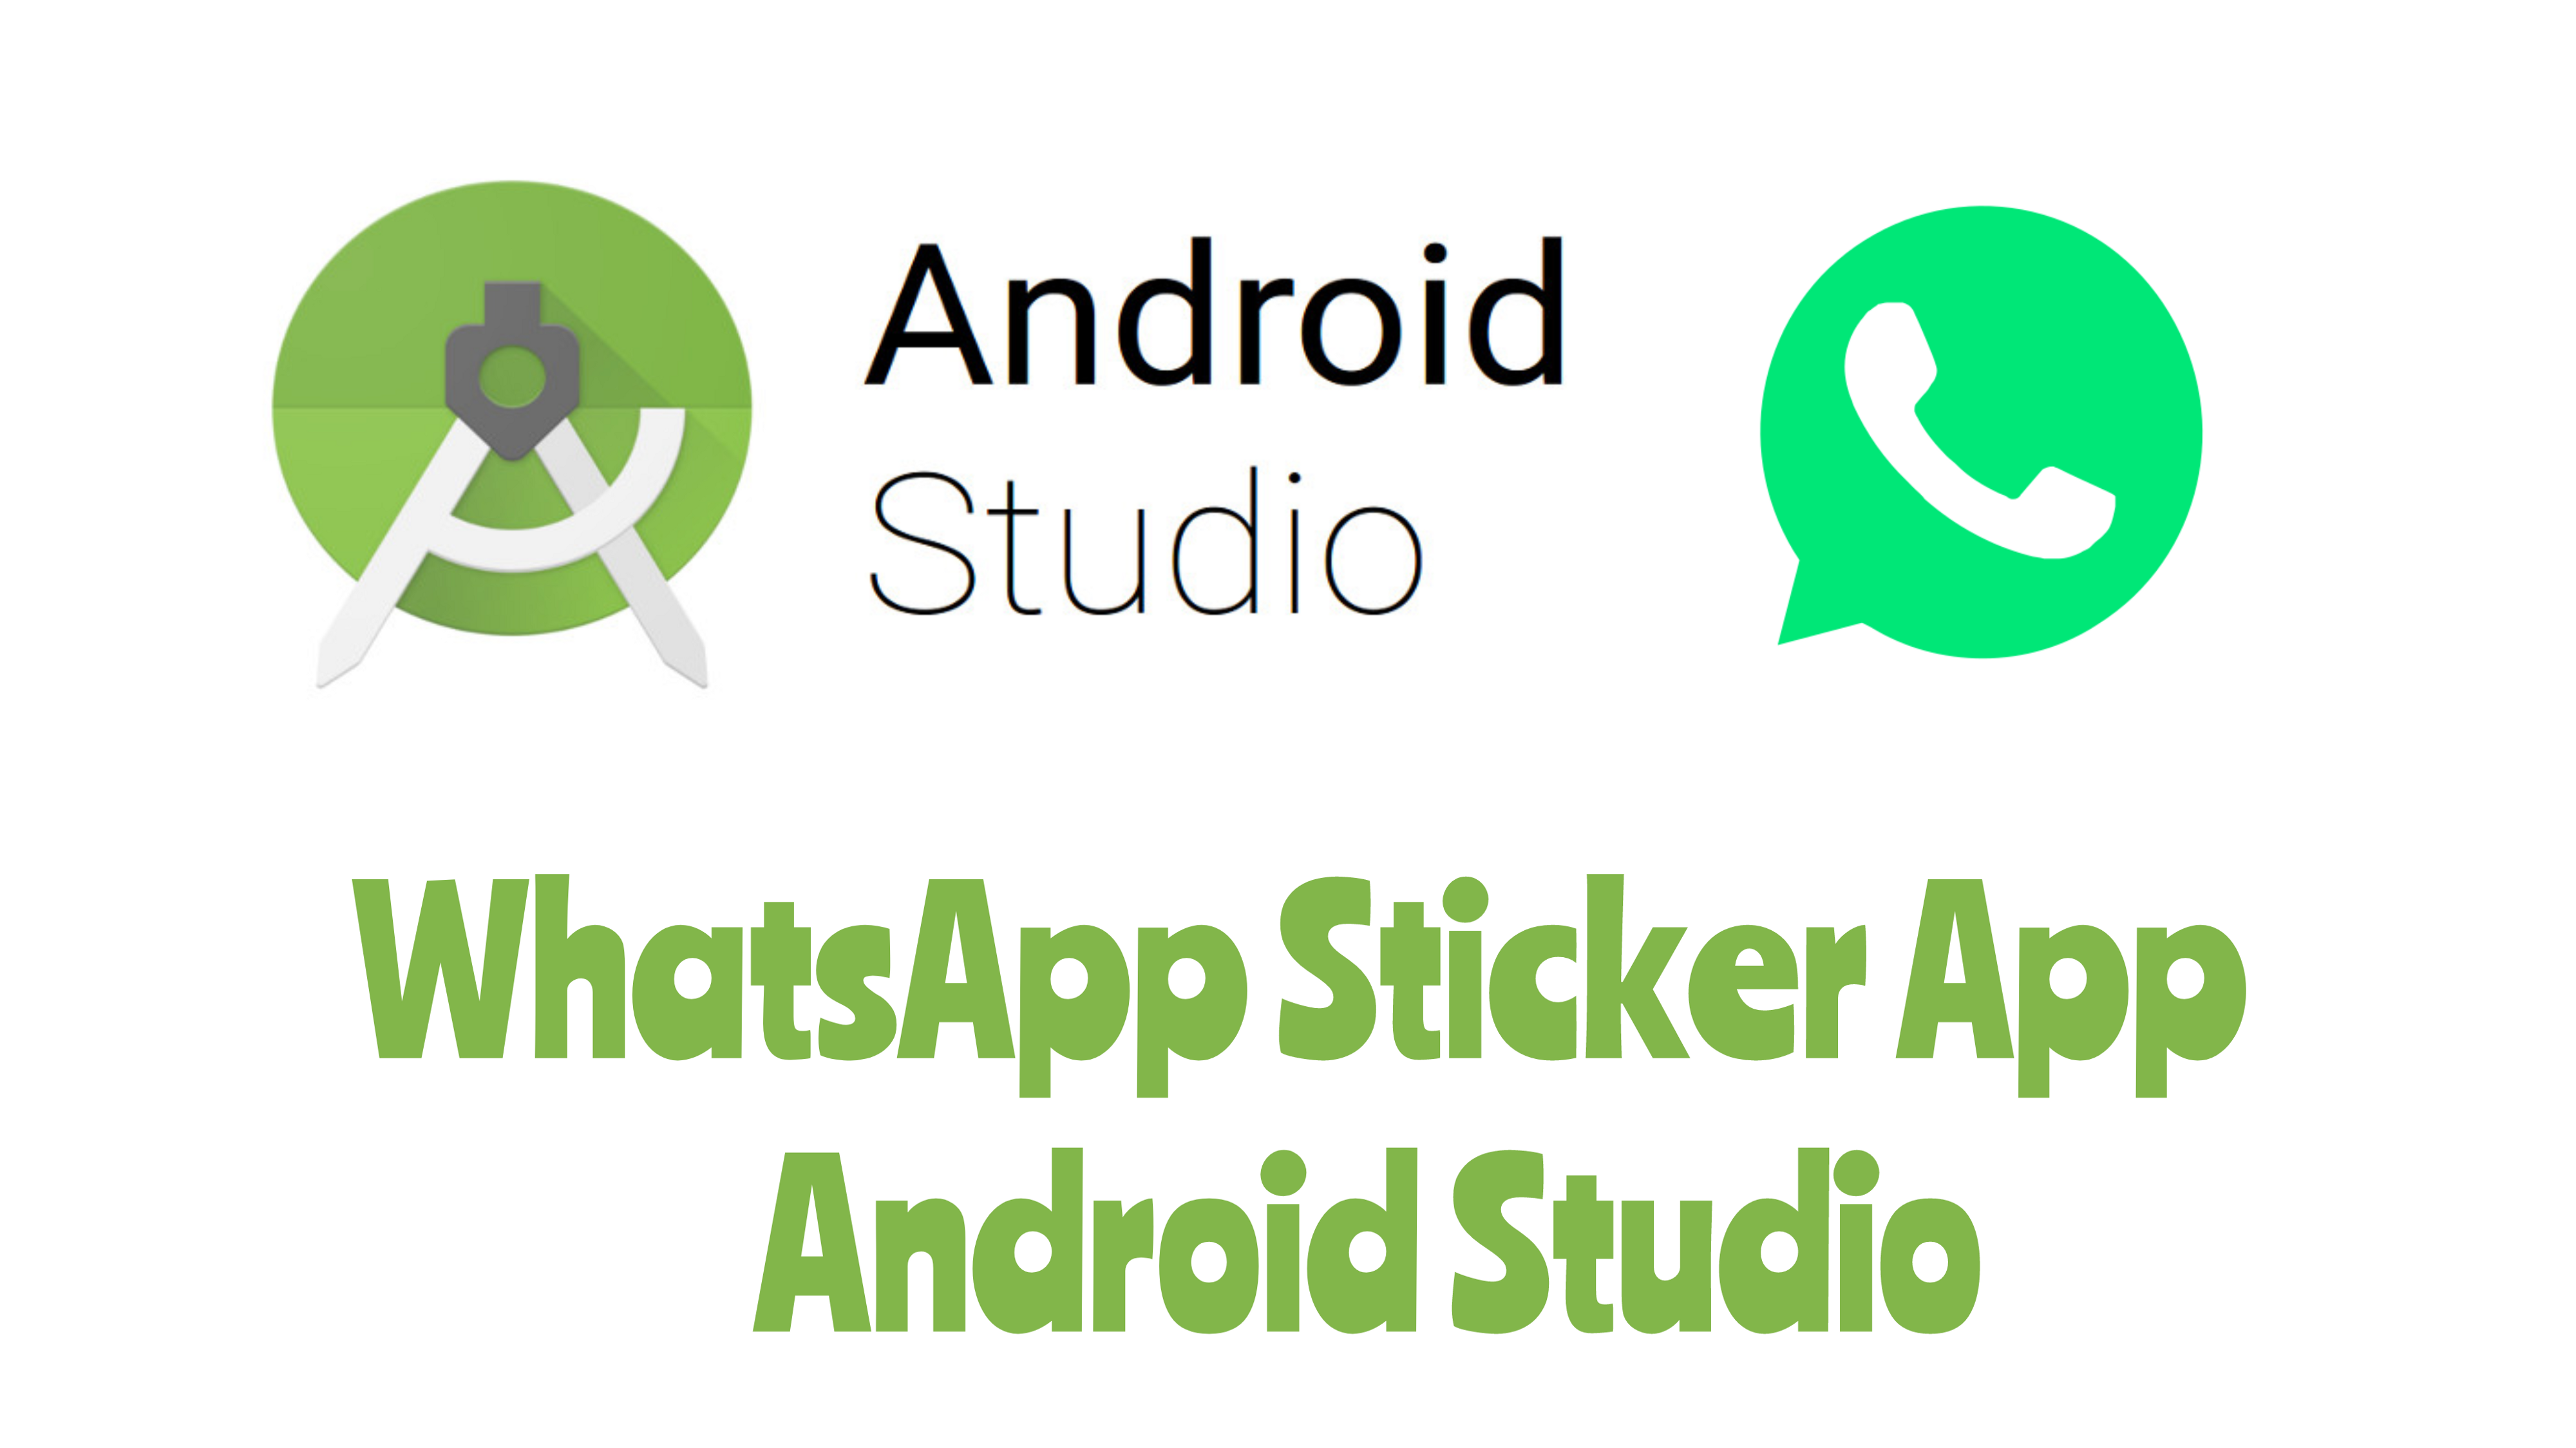 Creating WhatsApp stickers Application in Android Studio.